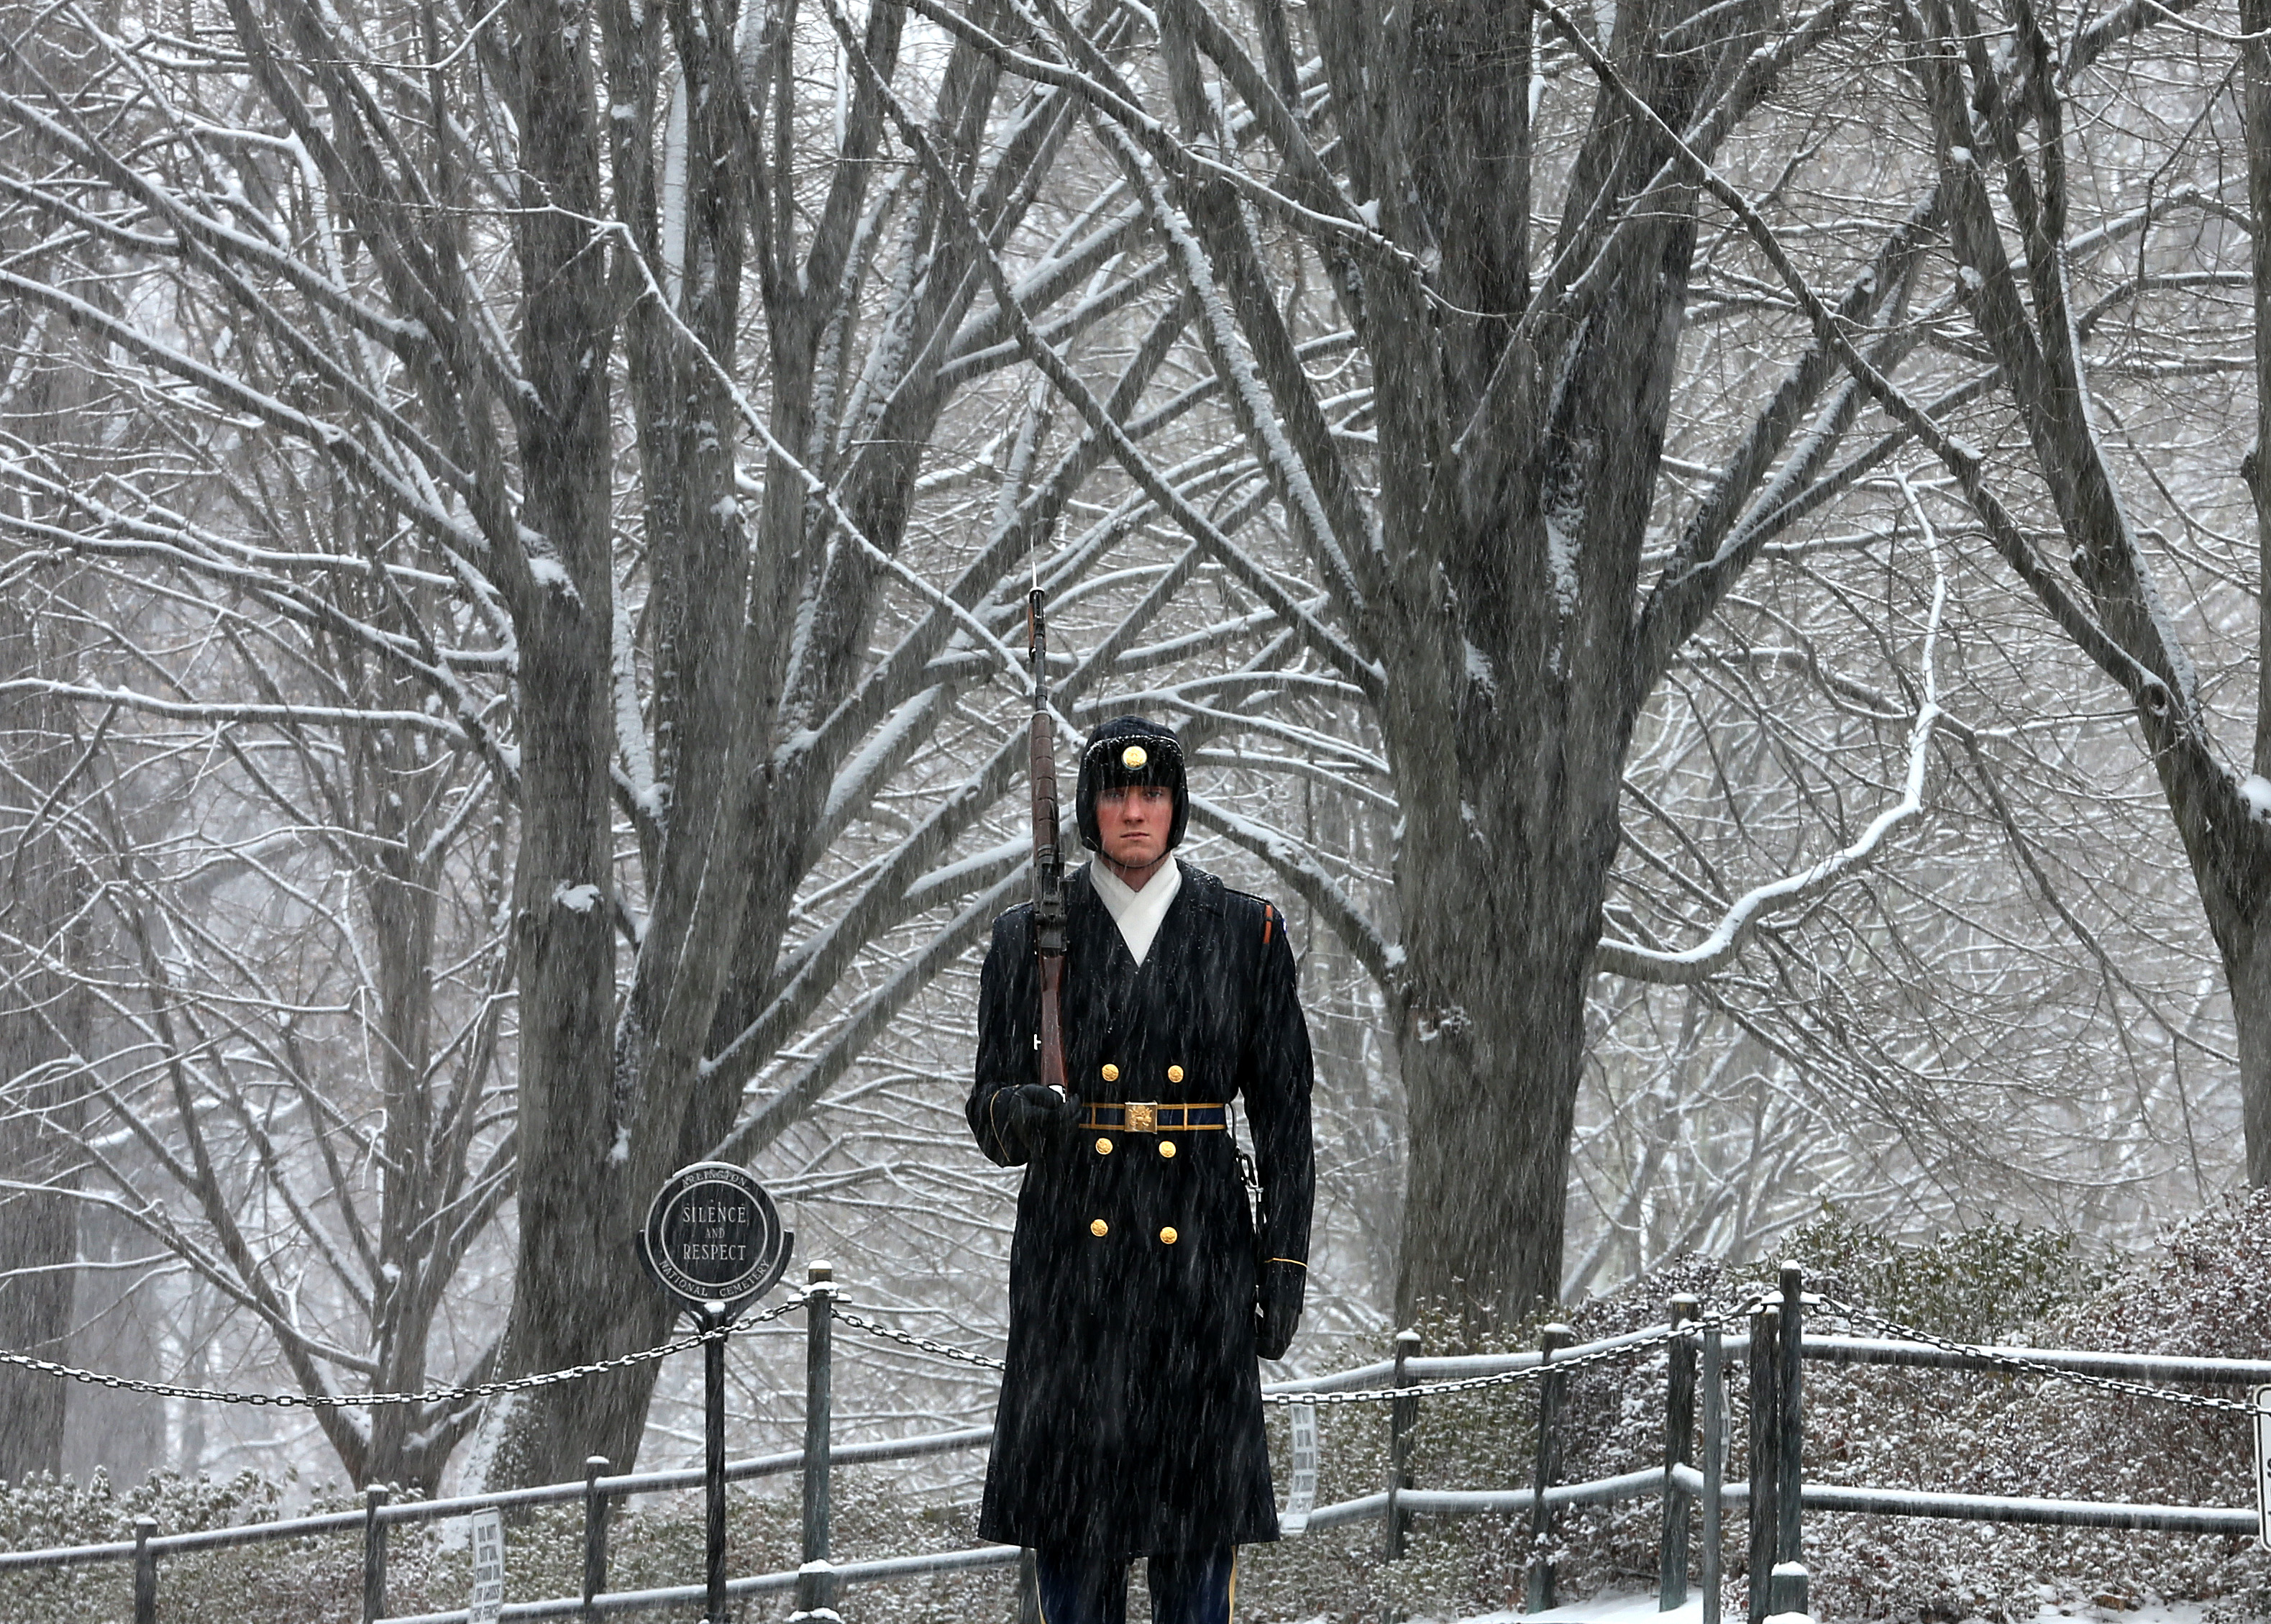 Snow falls as a member of the U.S. Army Old Guard, 3d U.S. Infantry Regiment guards the Tomb of the Unknowns at Arlington Cemetery in Va. on February 26, 2014.